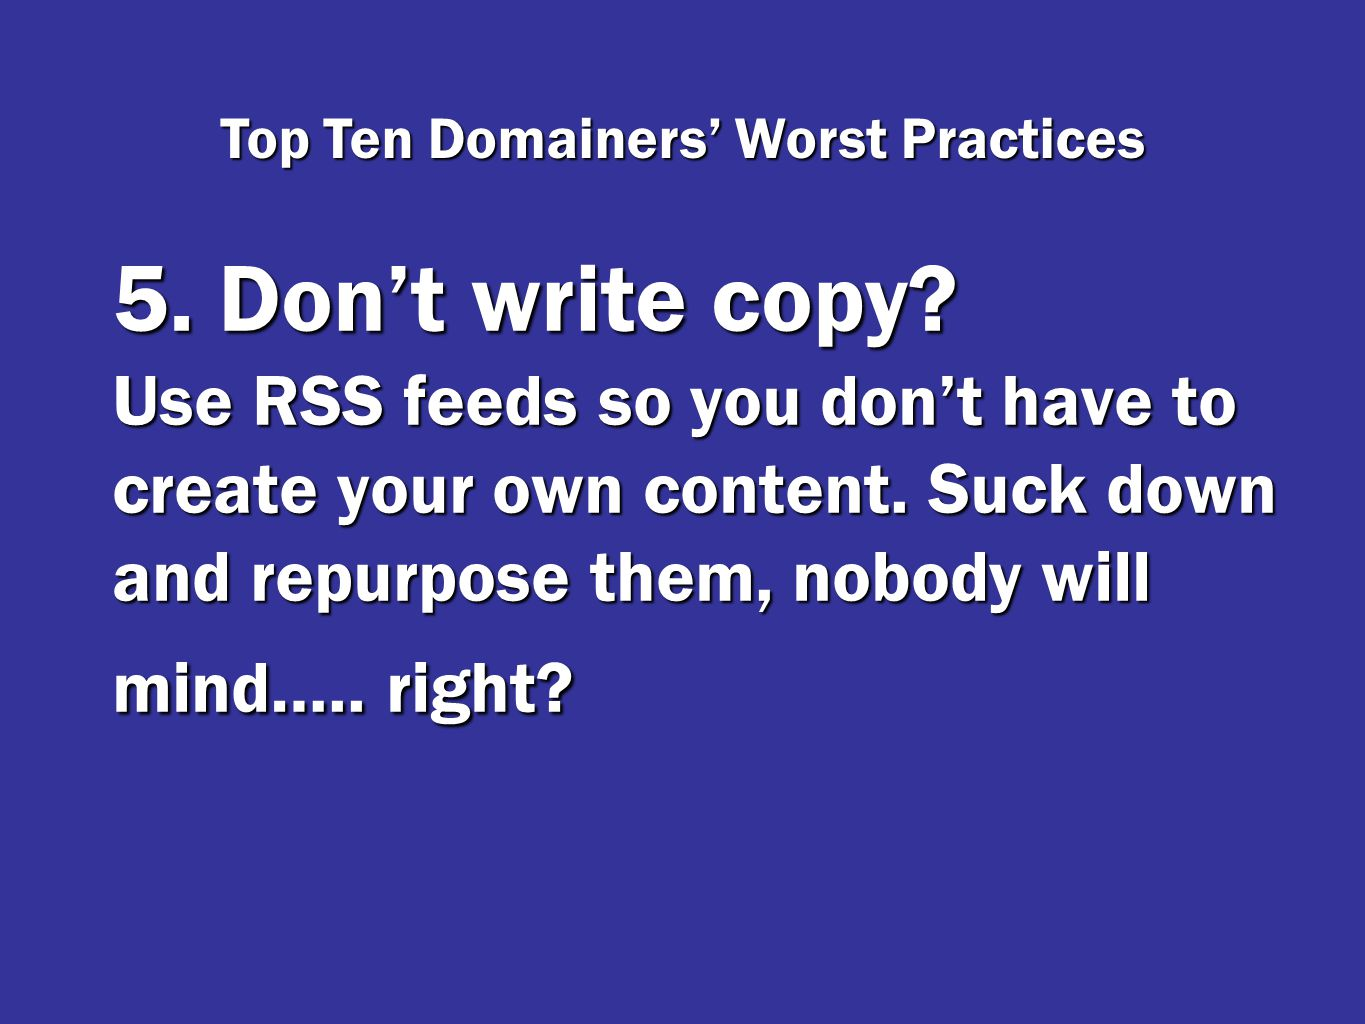 4.Build traffic to your sites by adding links in comments and trackbacks all over the Internet.